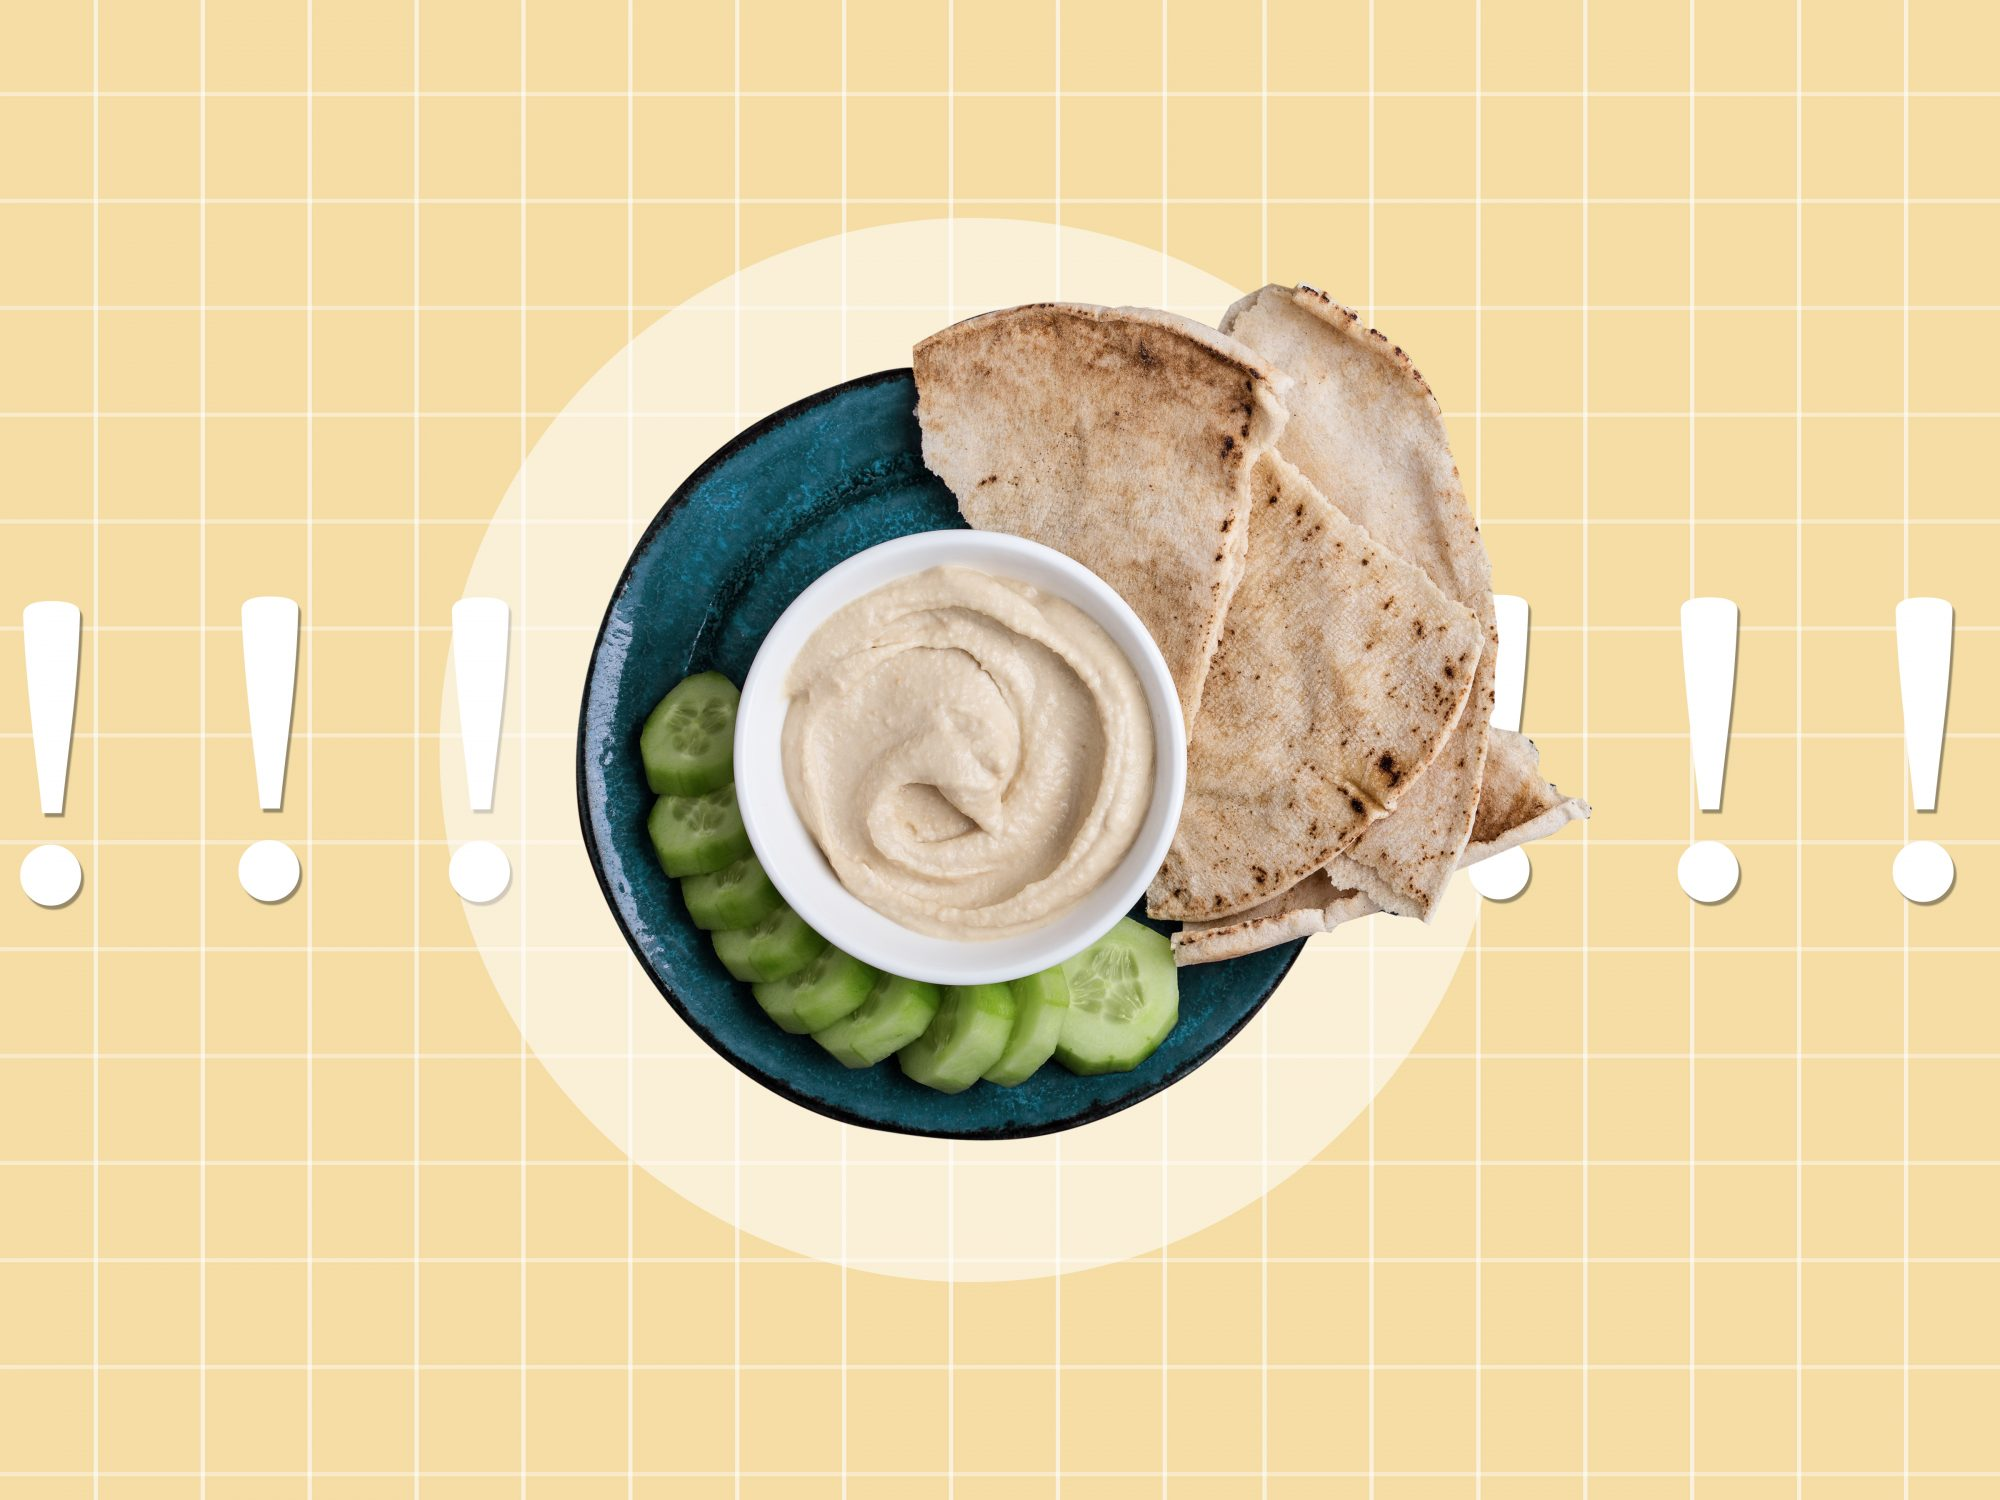 Nearly 90 Hummus Products Are Being Recalled Over Listeria Concerns—Here's What You Should Know